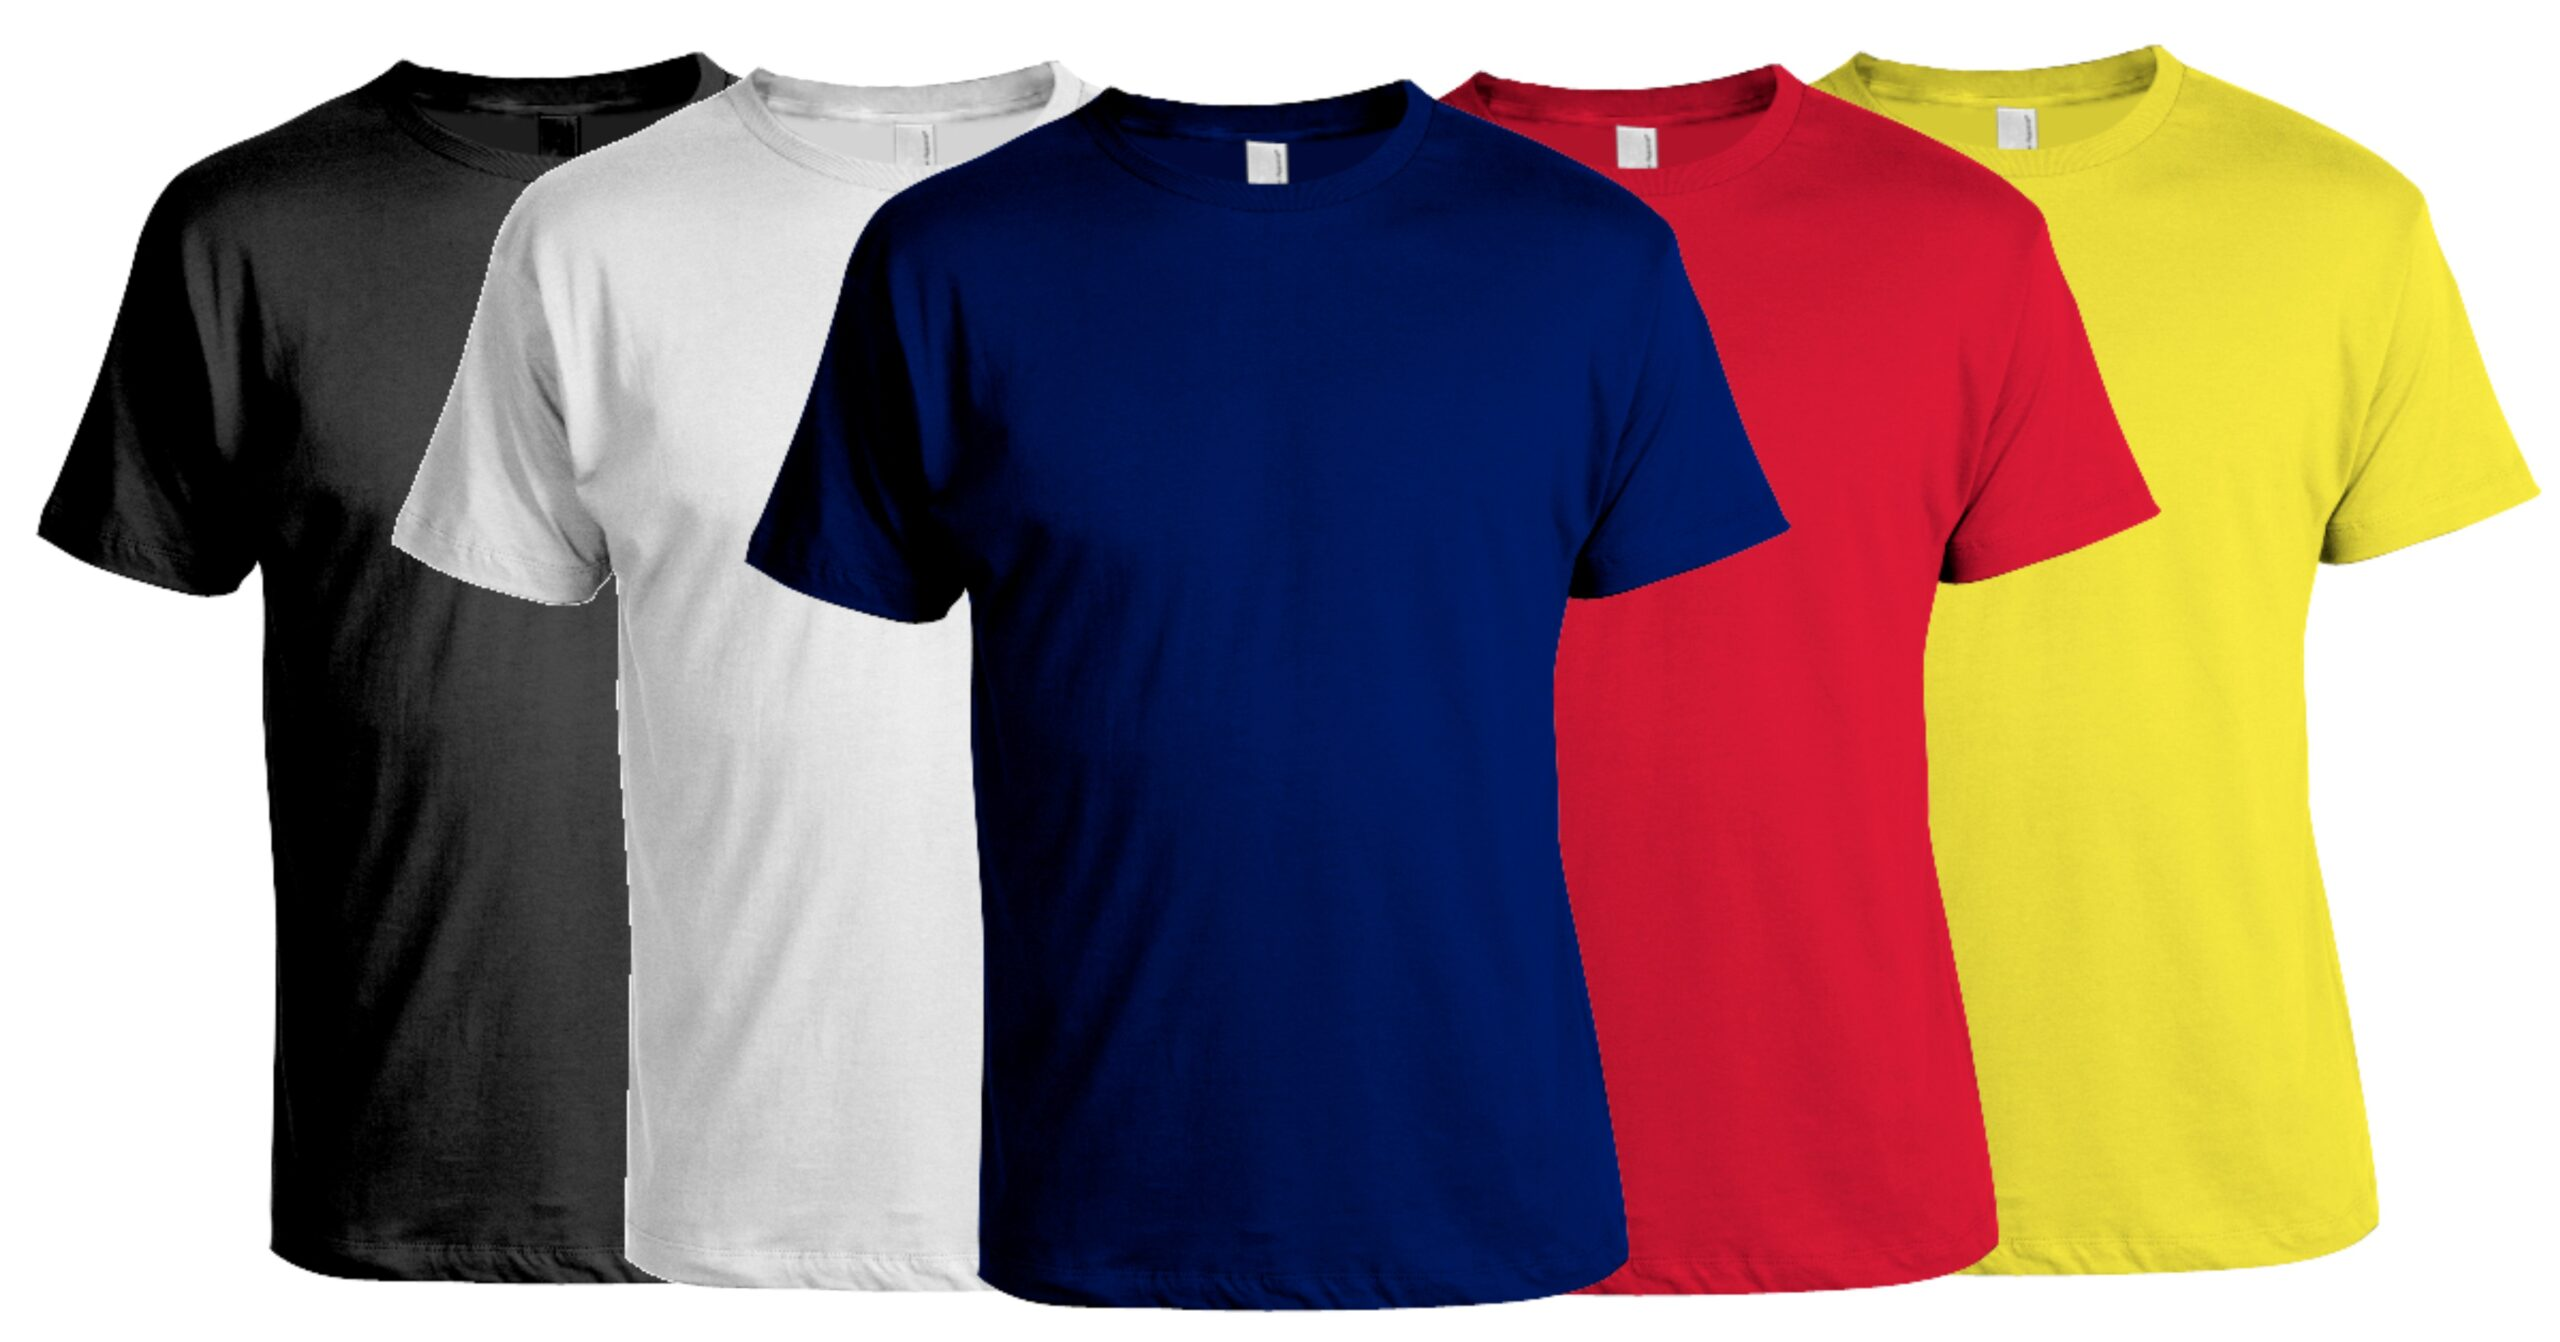 5 Ways to Save When Buying T-Shirts in Bulk